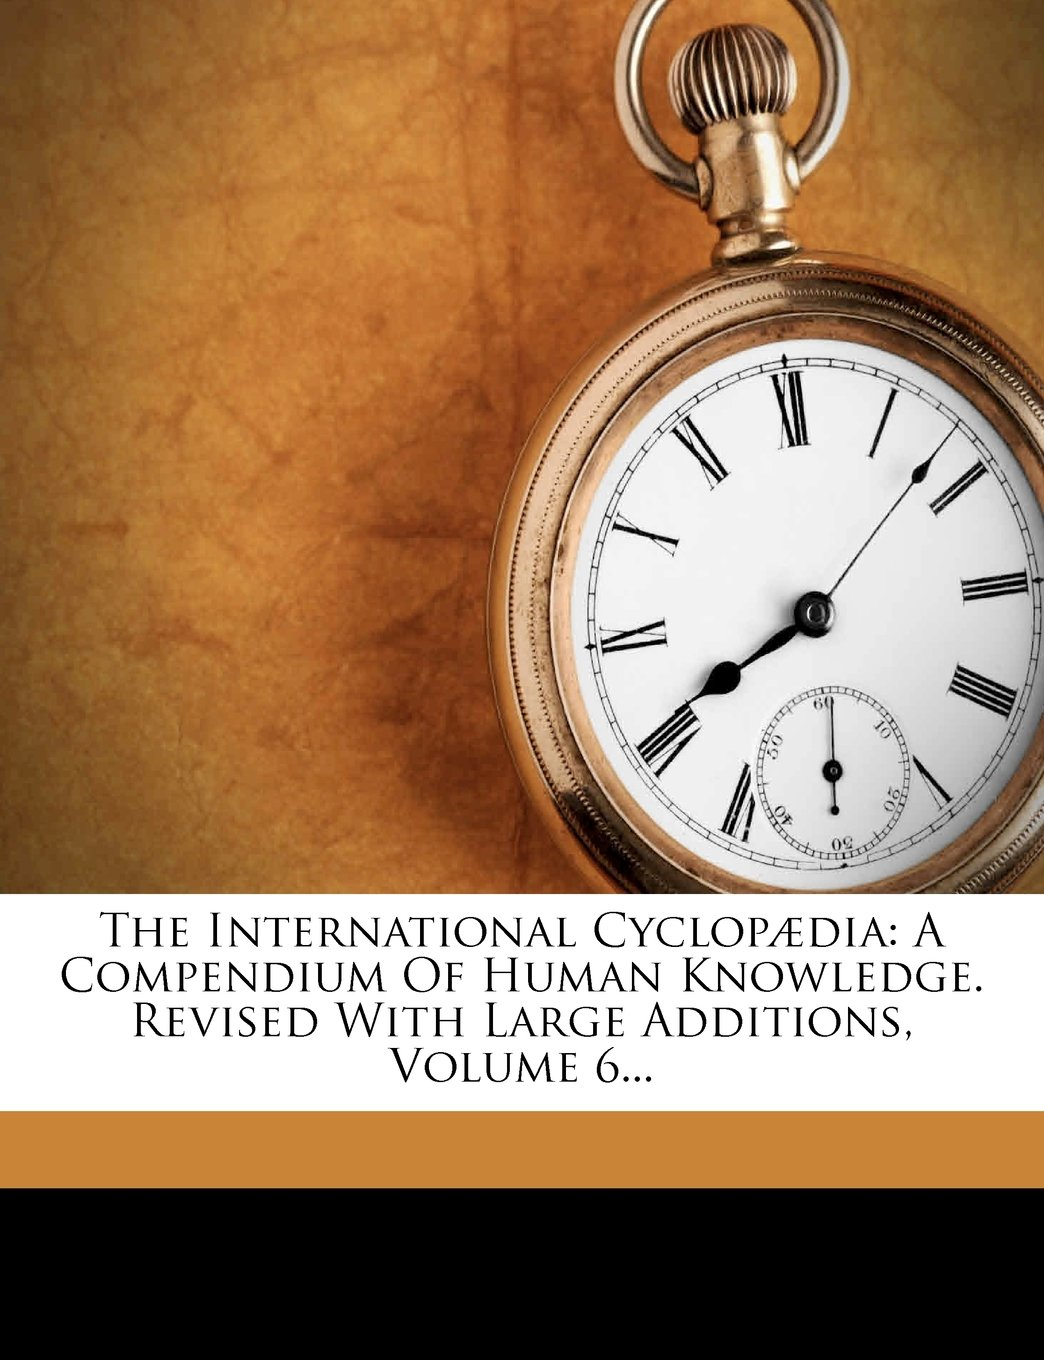 The International Cyclopædia: A Compendium Of Human Knowledge. Revised With Large Additions, Volume 6... pdf epub